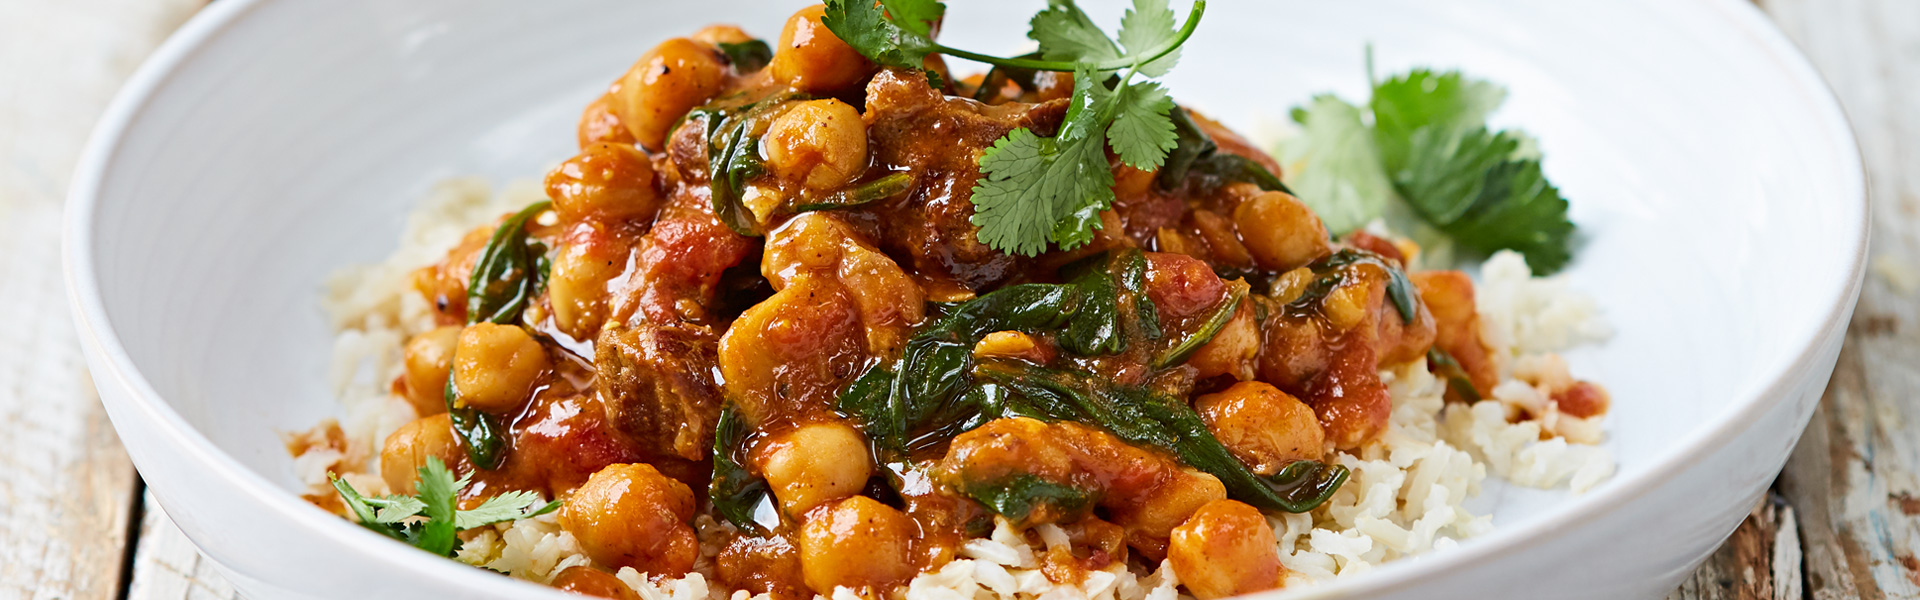 Jamie Oliver: Lamb and Chickpea Curry Recipe